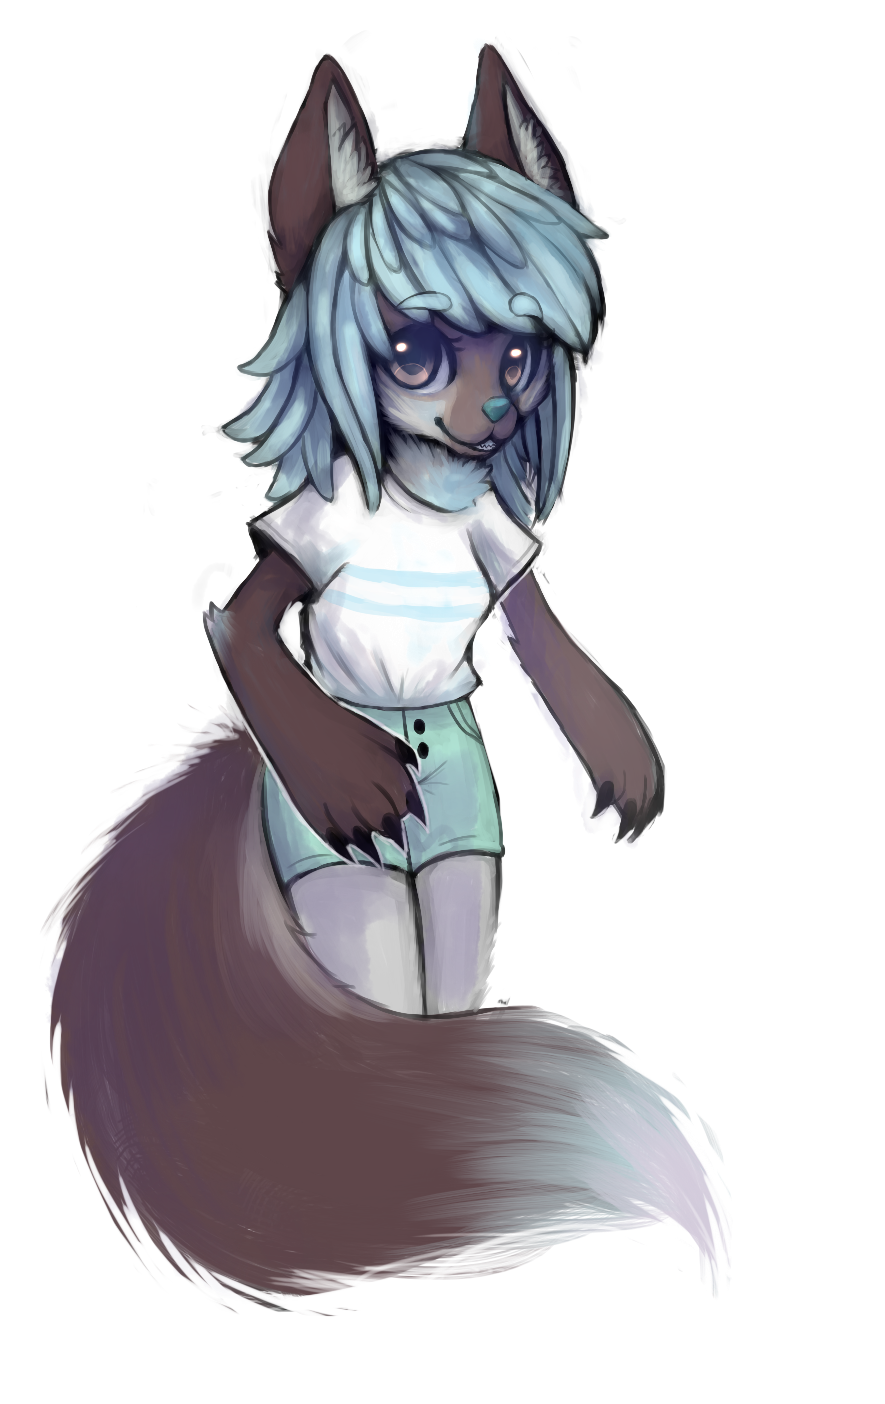 alpha_channel anthro canine chibi clothed clothing female fur galaxymonster hair looking_at_viewer mammal simple_background smile solo standing transparent_background